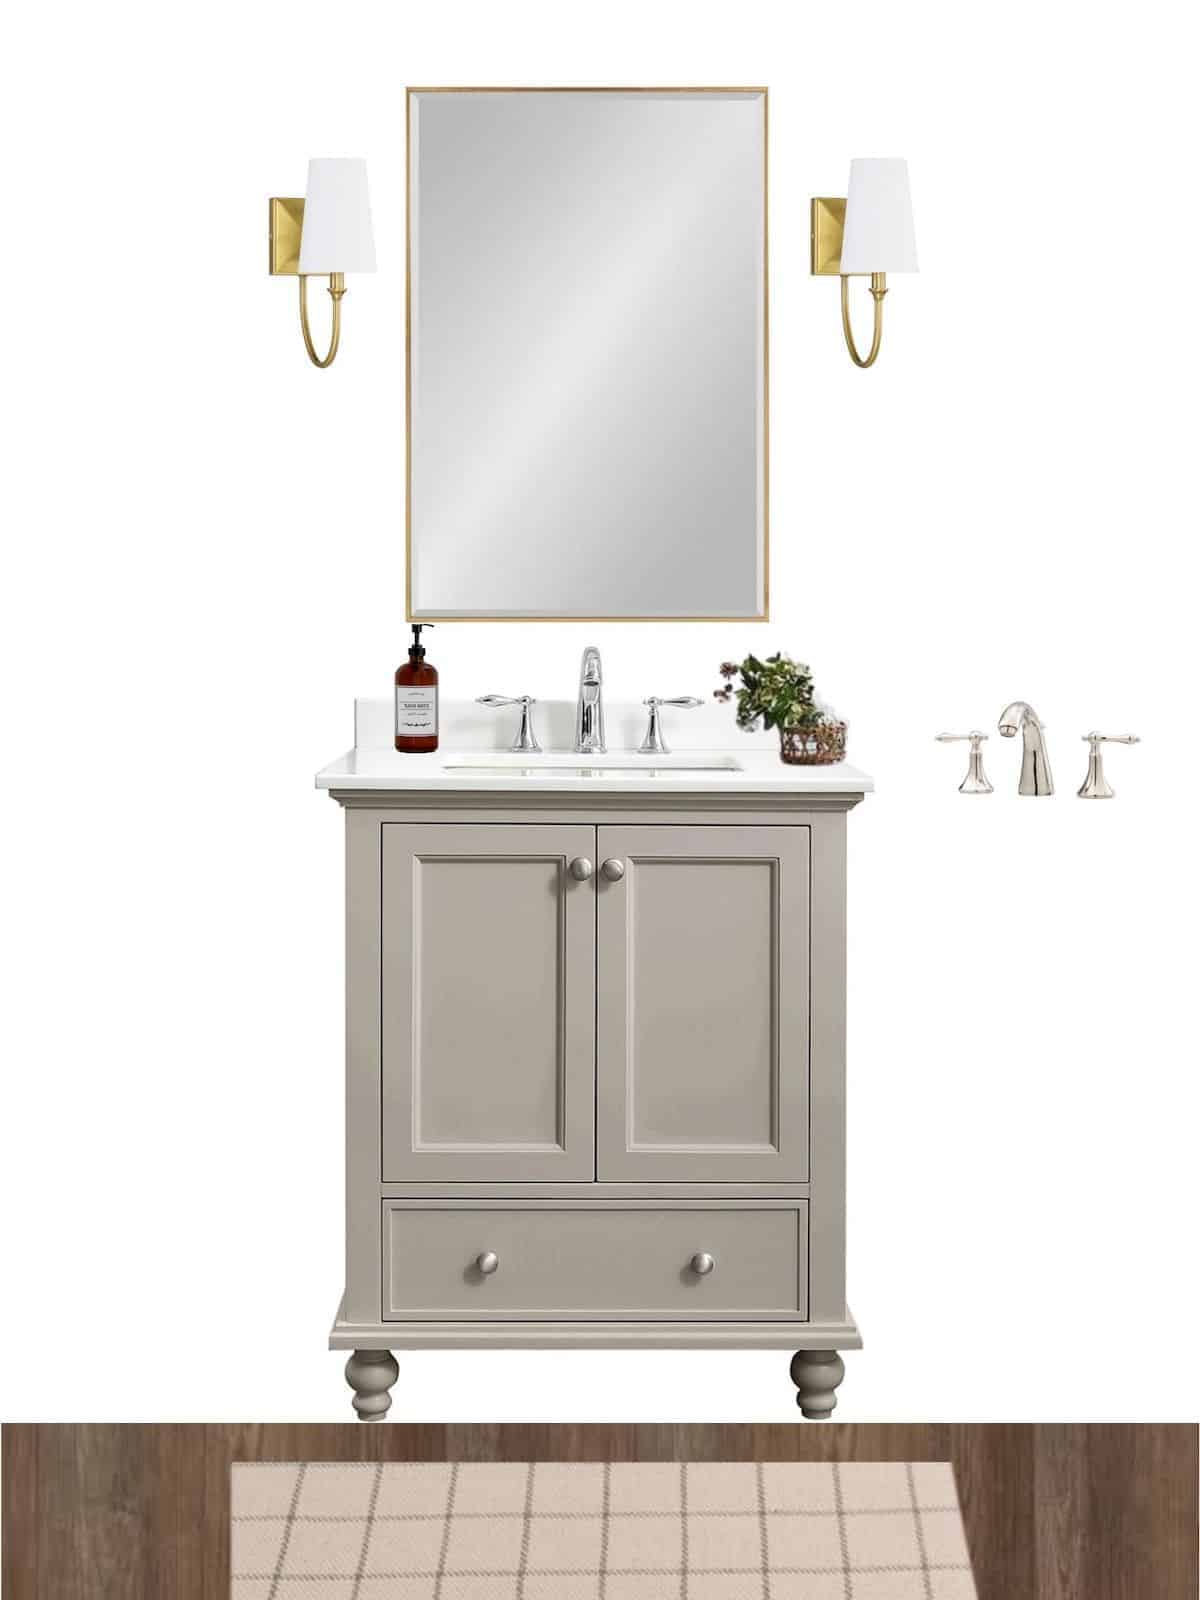 bathroom mood board with vanity mirror and sconces